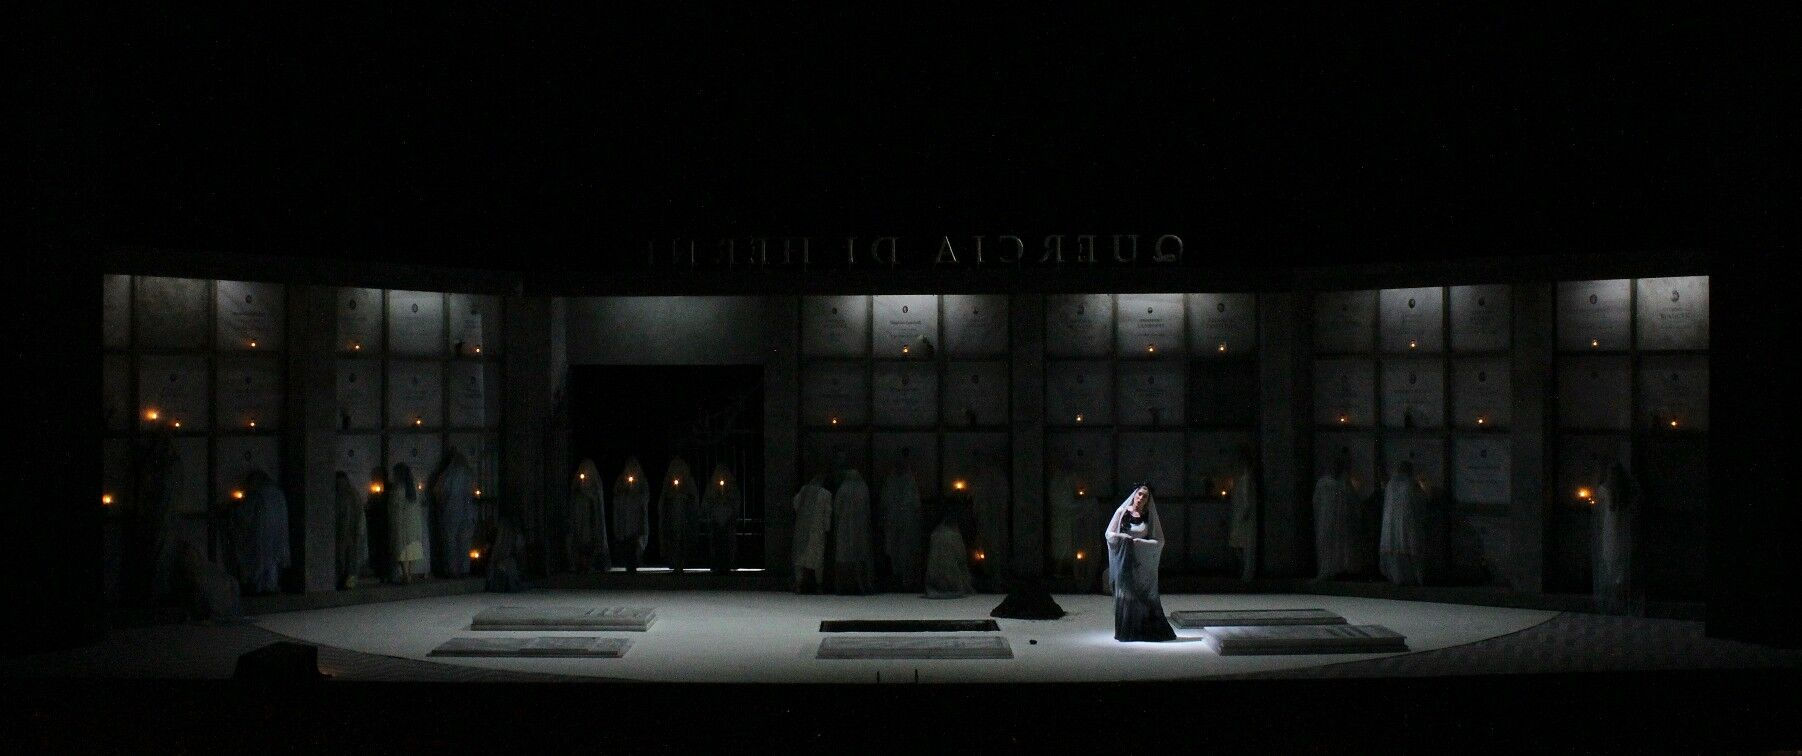 Falstaff-Opera-by-Giuseppe-Verdi-directed-by-Jacopo-Spirei- in-Karlsruhe-10